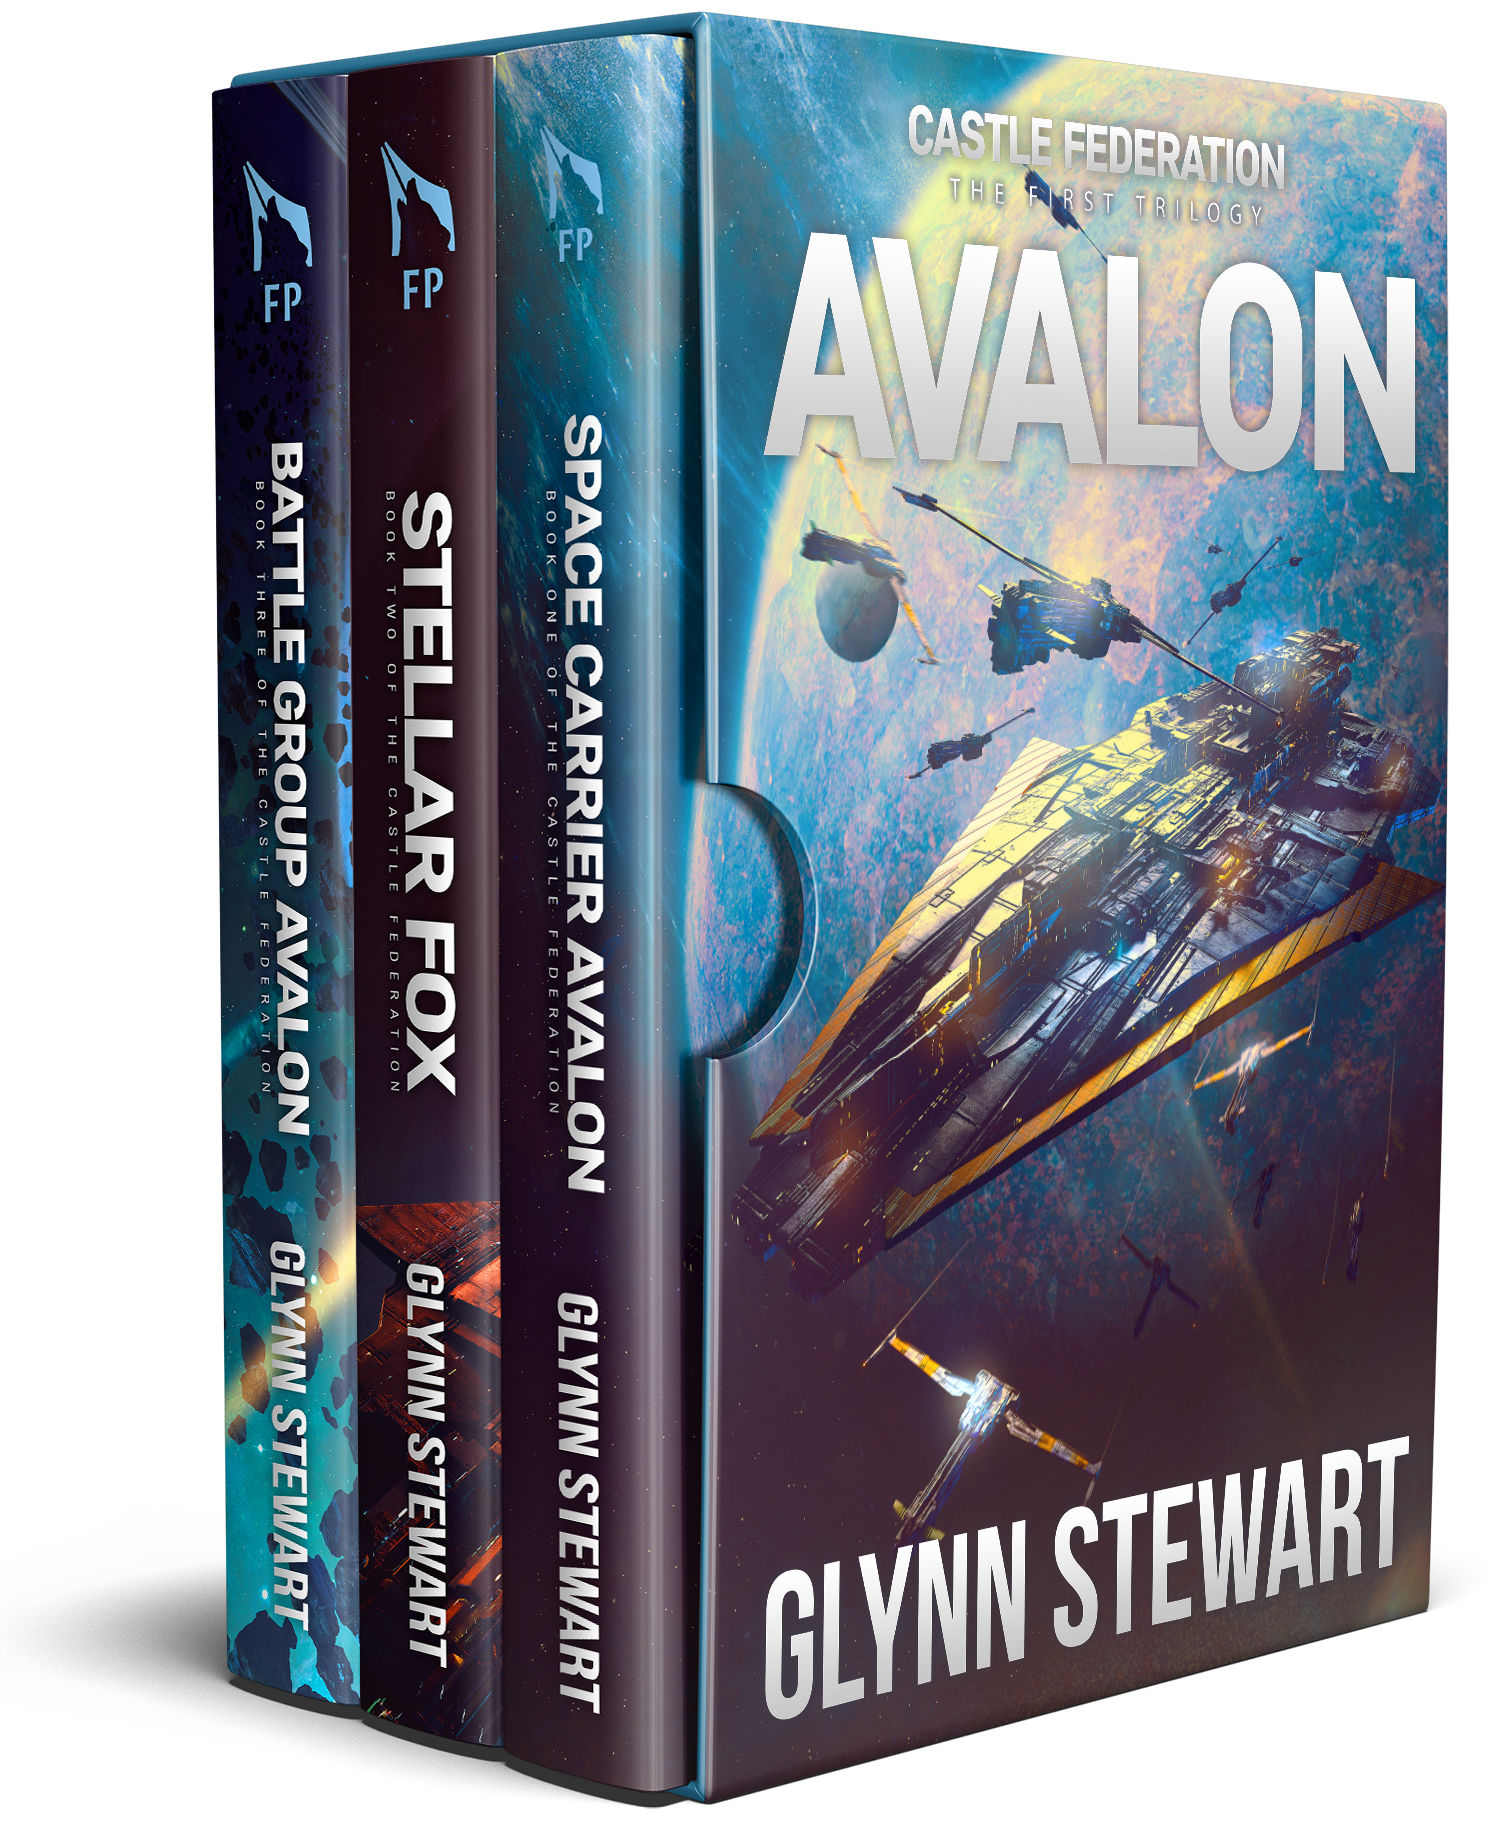 https://www.glynnstewart.com/wp-content/uploads/2019/10/Avalon-Trilogy-Box-Set-Lrg-Web.jpg